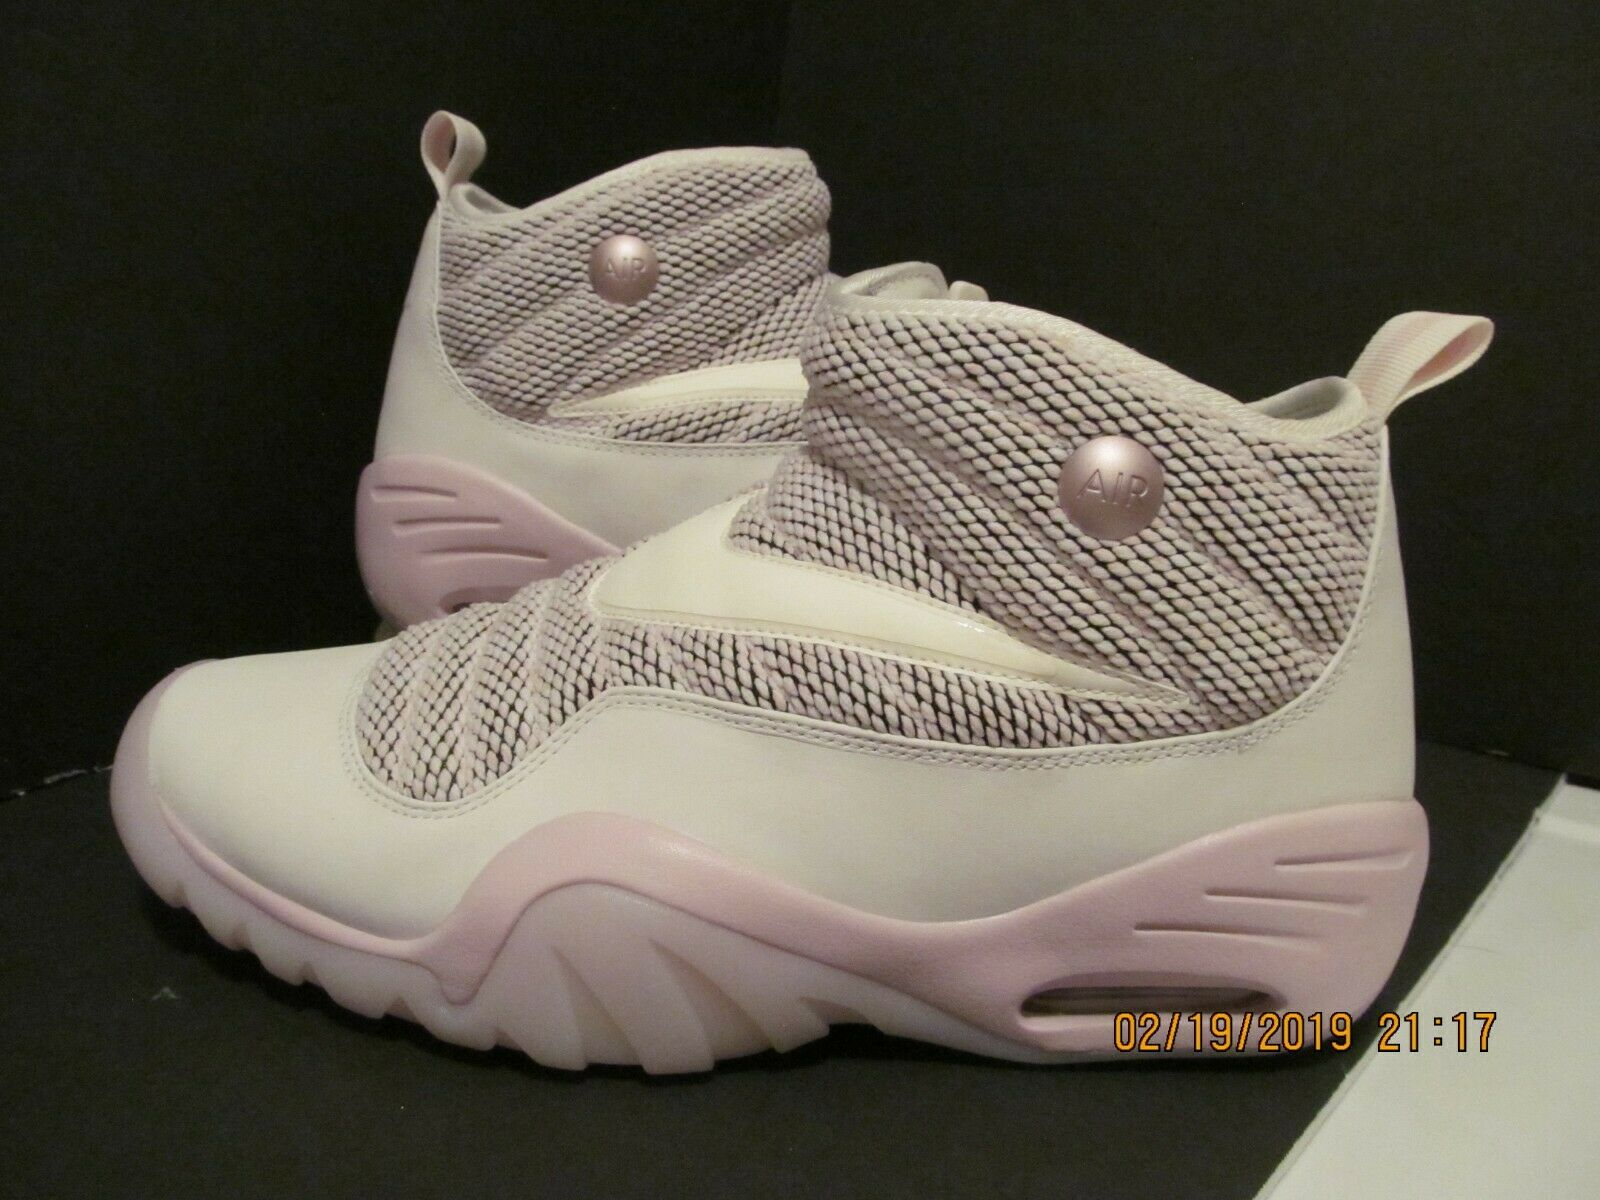 ea8897ddd35 NDS & RARE NIKELAB AIR SHAKE NDESTRUKT SAIL SIZE 13 PIGALLE ELEMENTAL  nxkqpo118-Athletic Shoes